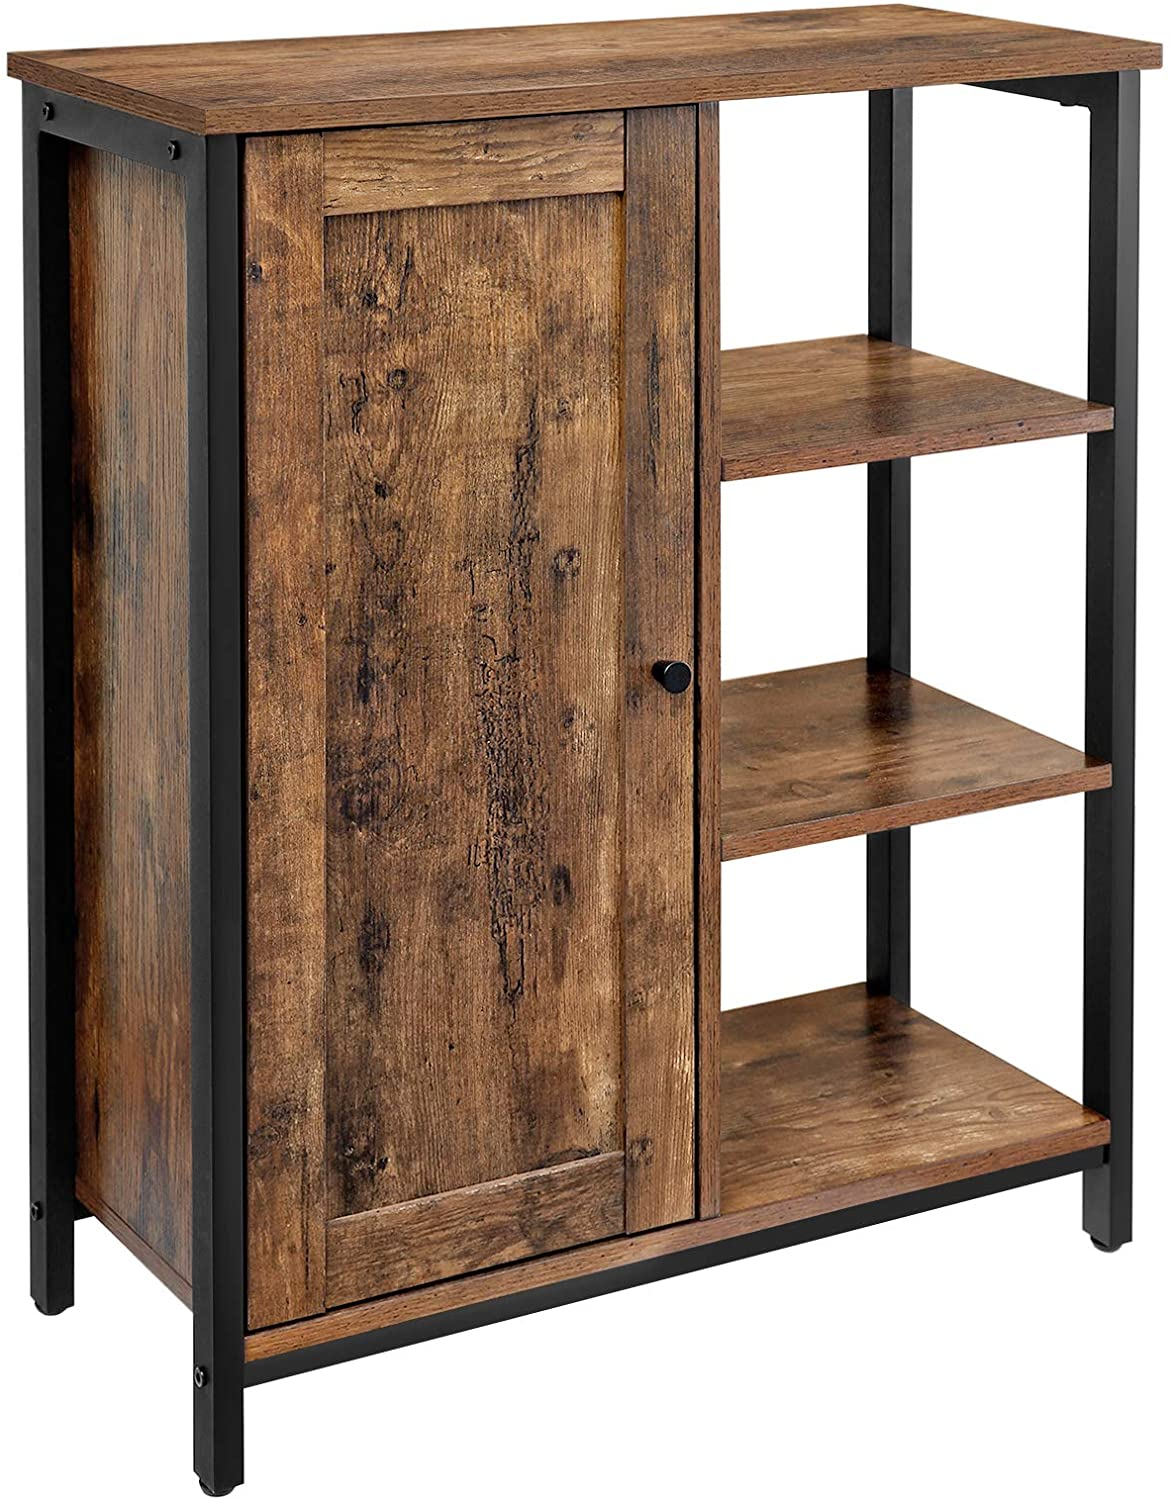 Enjoy fast, free nationwide shipping!  Family owned and operated, HawkinsWoodshop.com is your one stop shop for affordable furniture.  Shop HawkinsWoodshop.com for solid wood & metal modern, traditional, contemporary, industrial, custom, rustic, and farmhouse furniture including our Ryan Multifunctional Shelving Storage Cabinet.